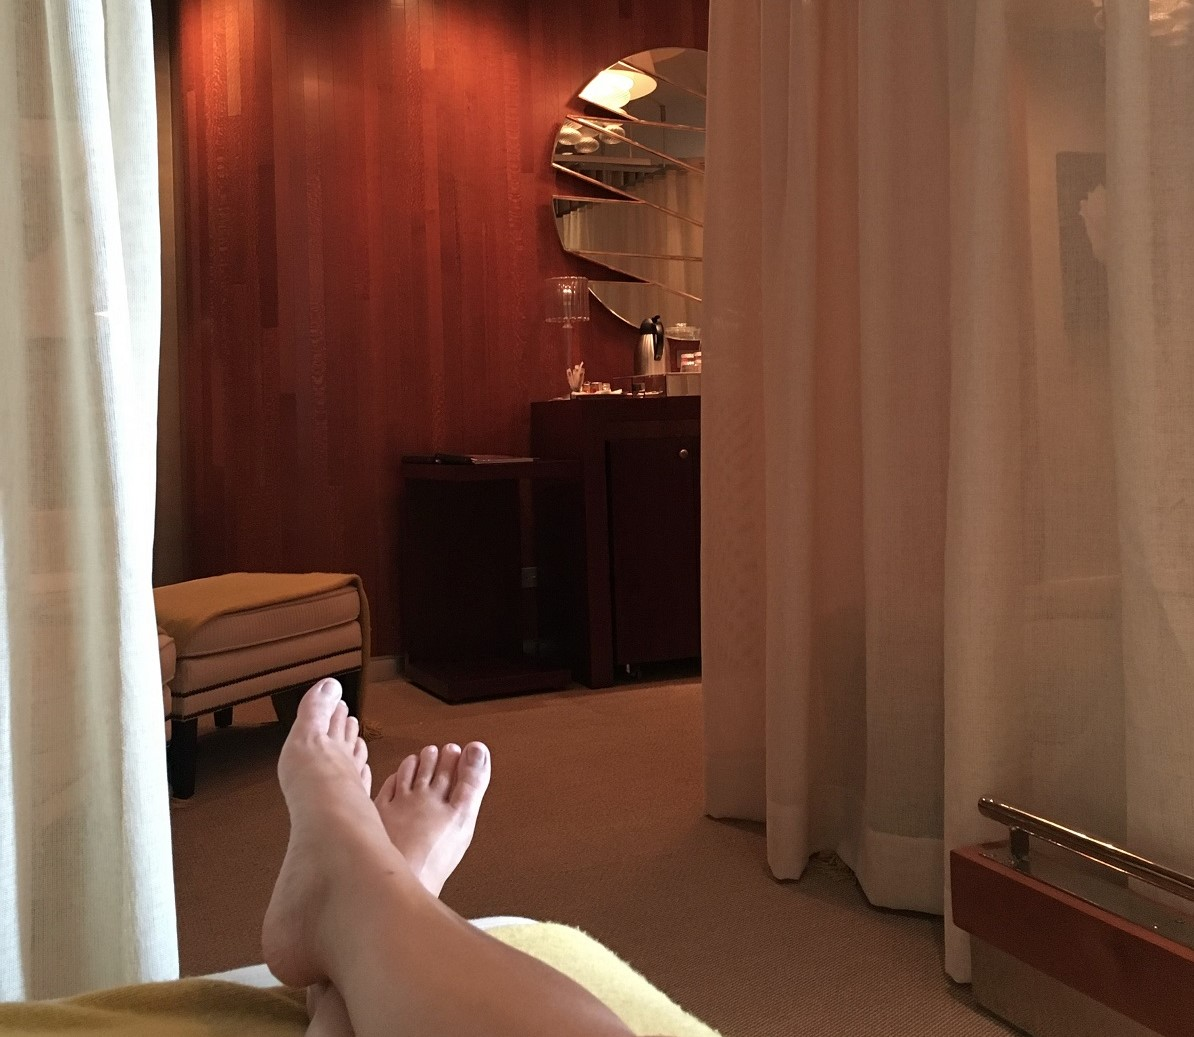 Experience the Condado Vanderbilt Spa in Puerto Rico